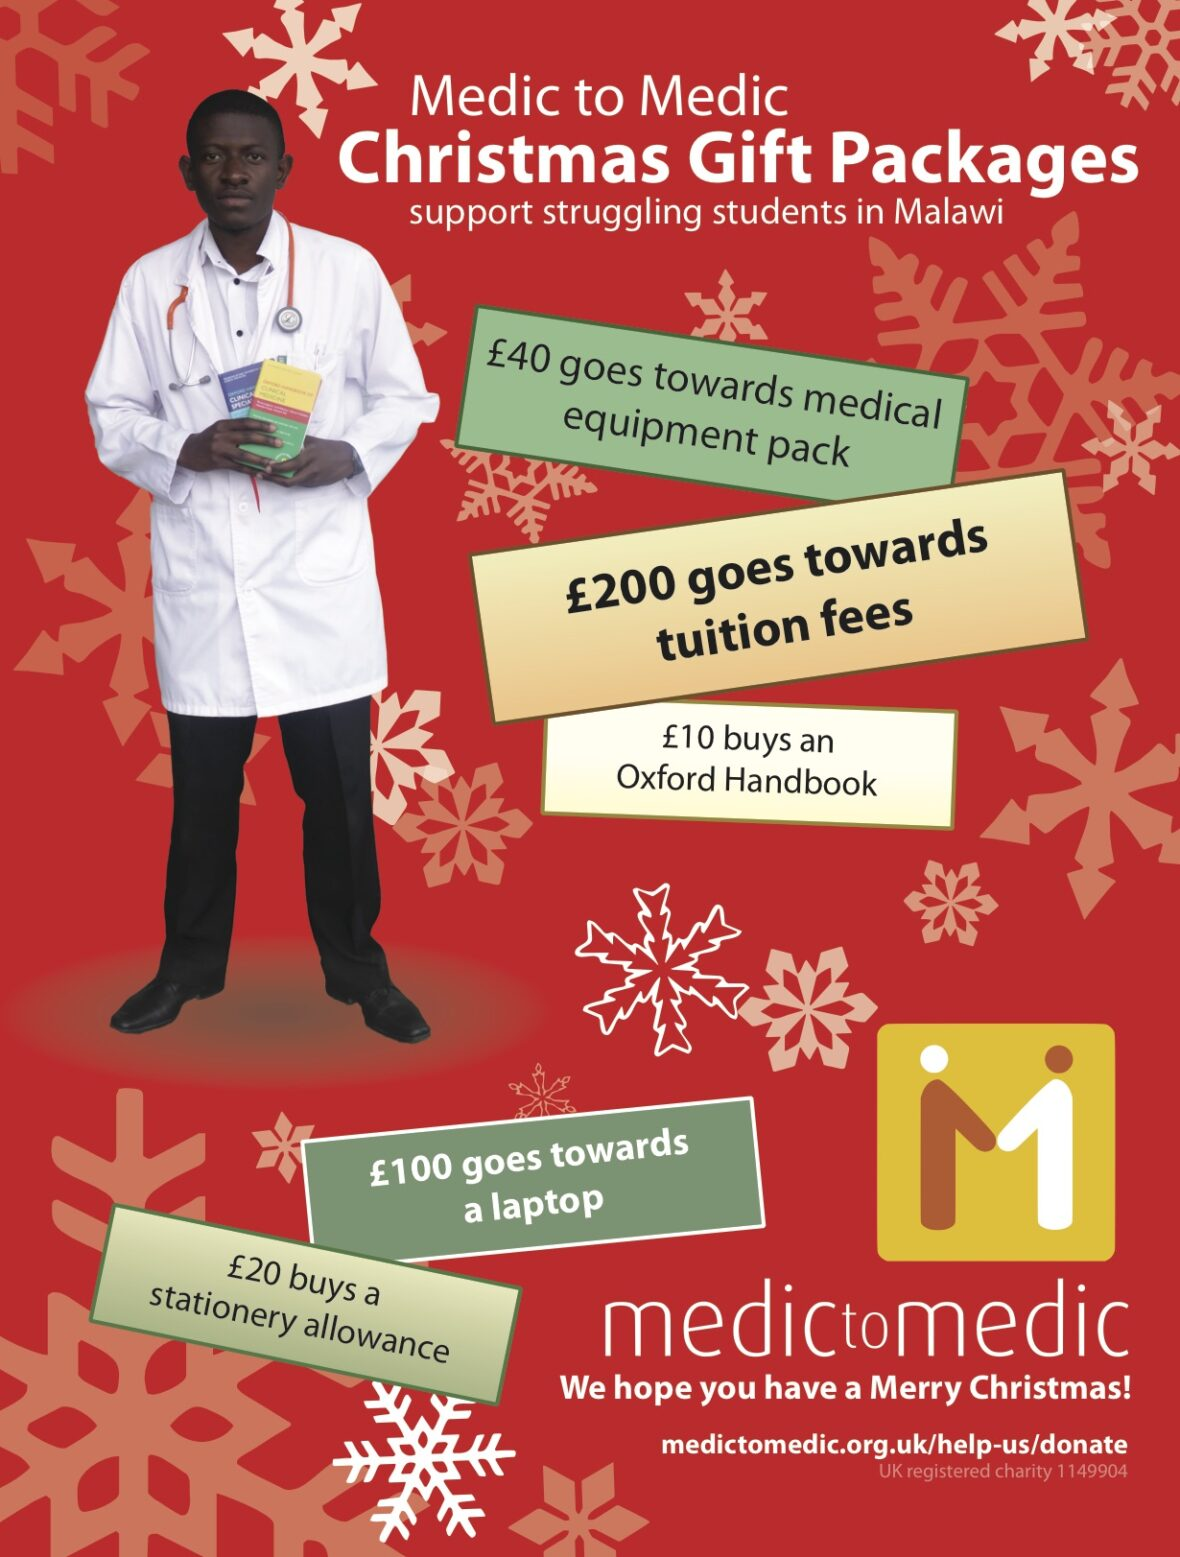 Christmas Gift Packages Medic To Medic